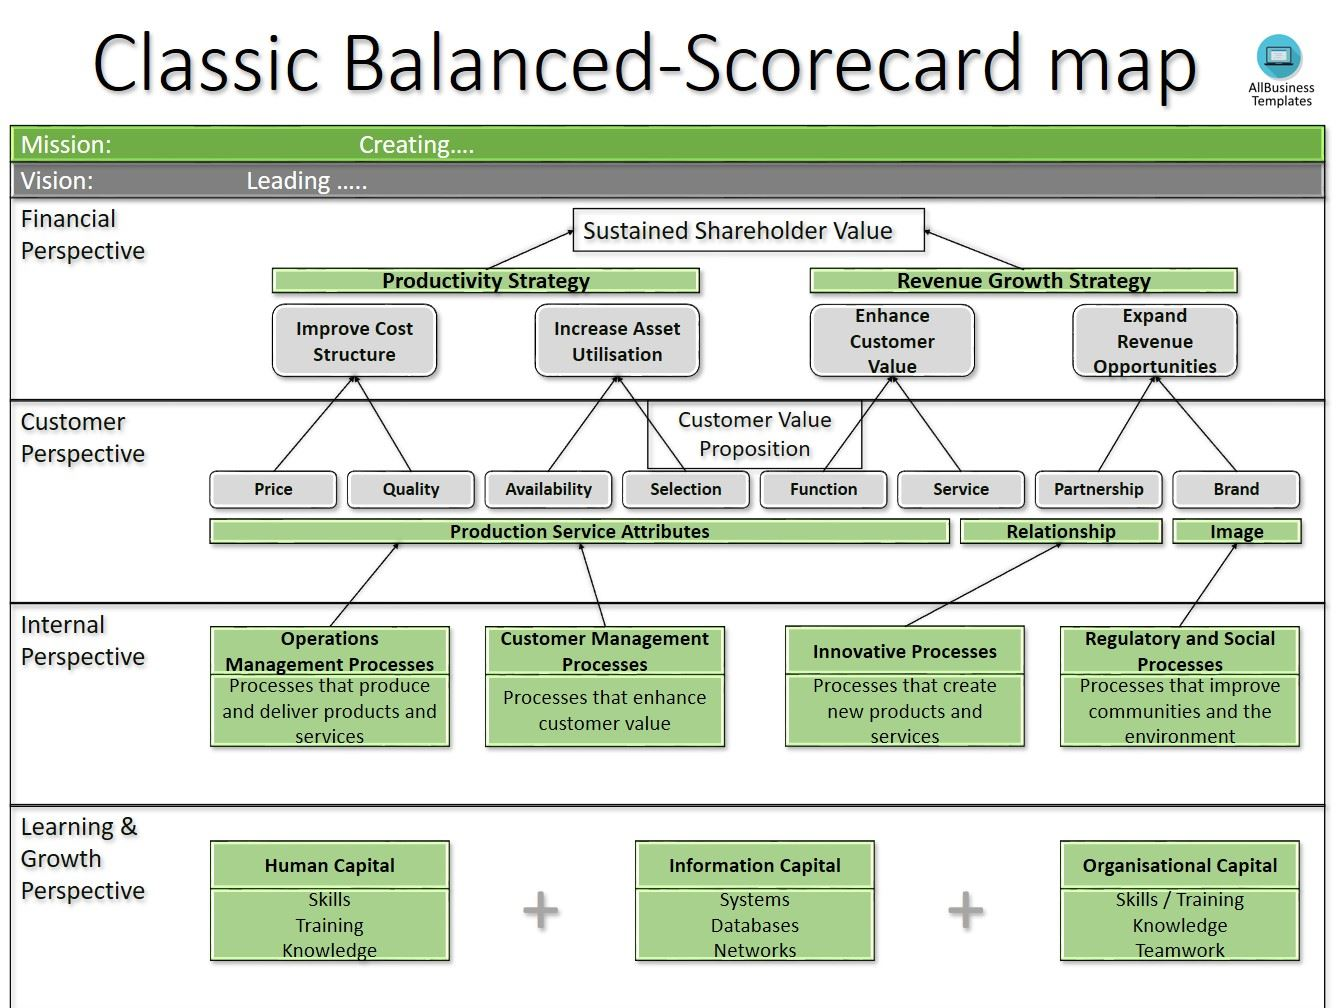 Business balanced scorecard template templates at business balanced scorecard template main image flashek Gallery